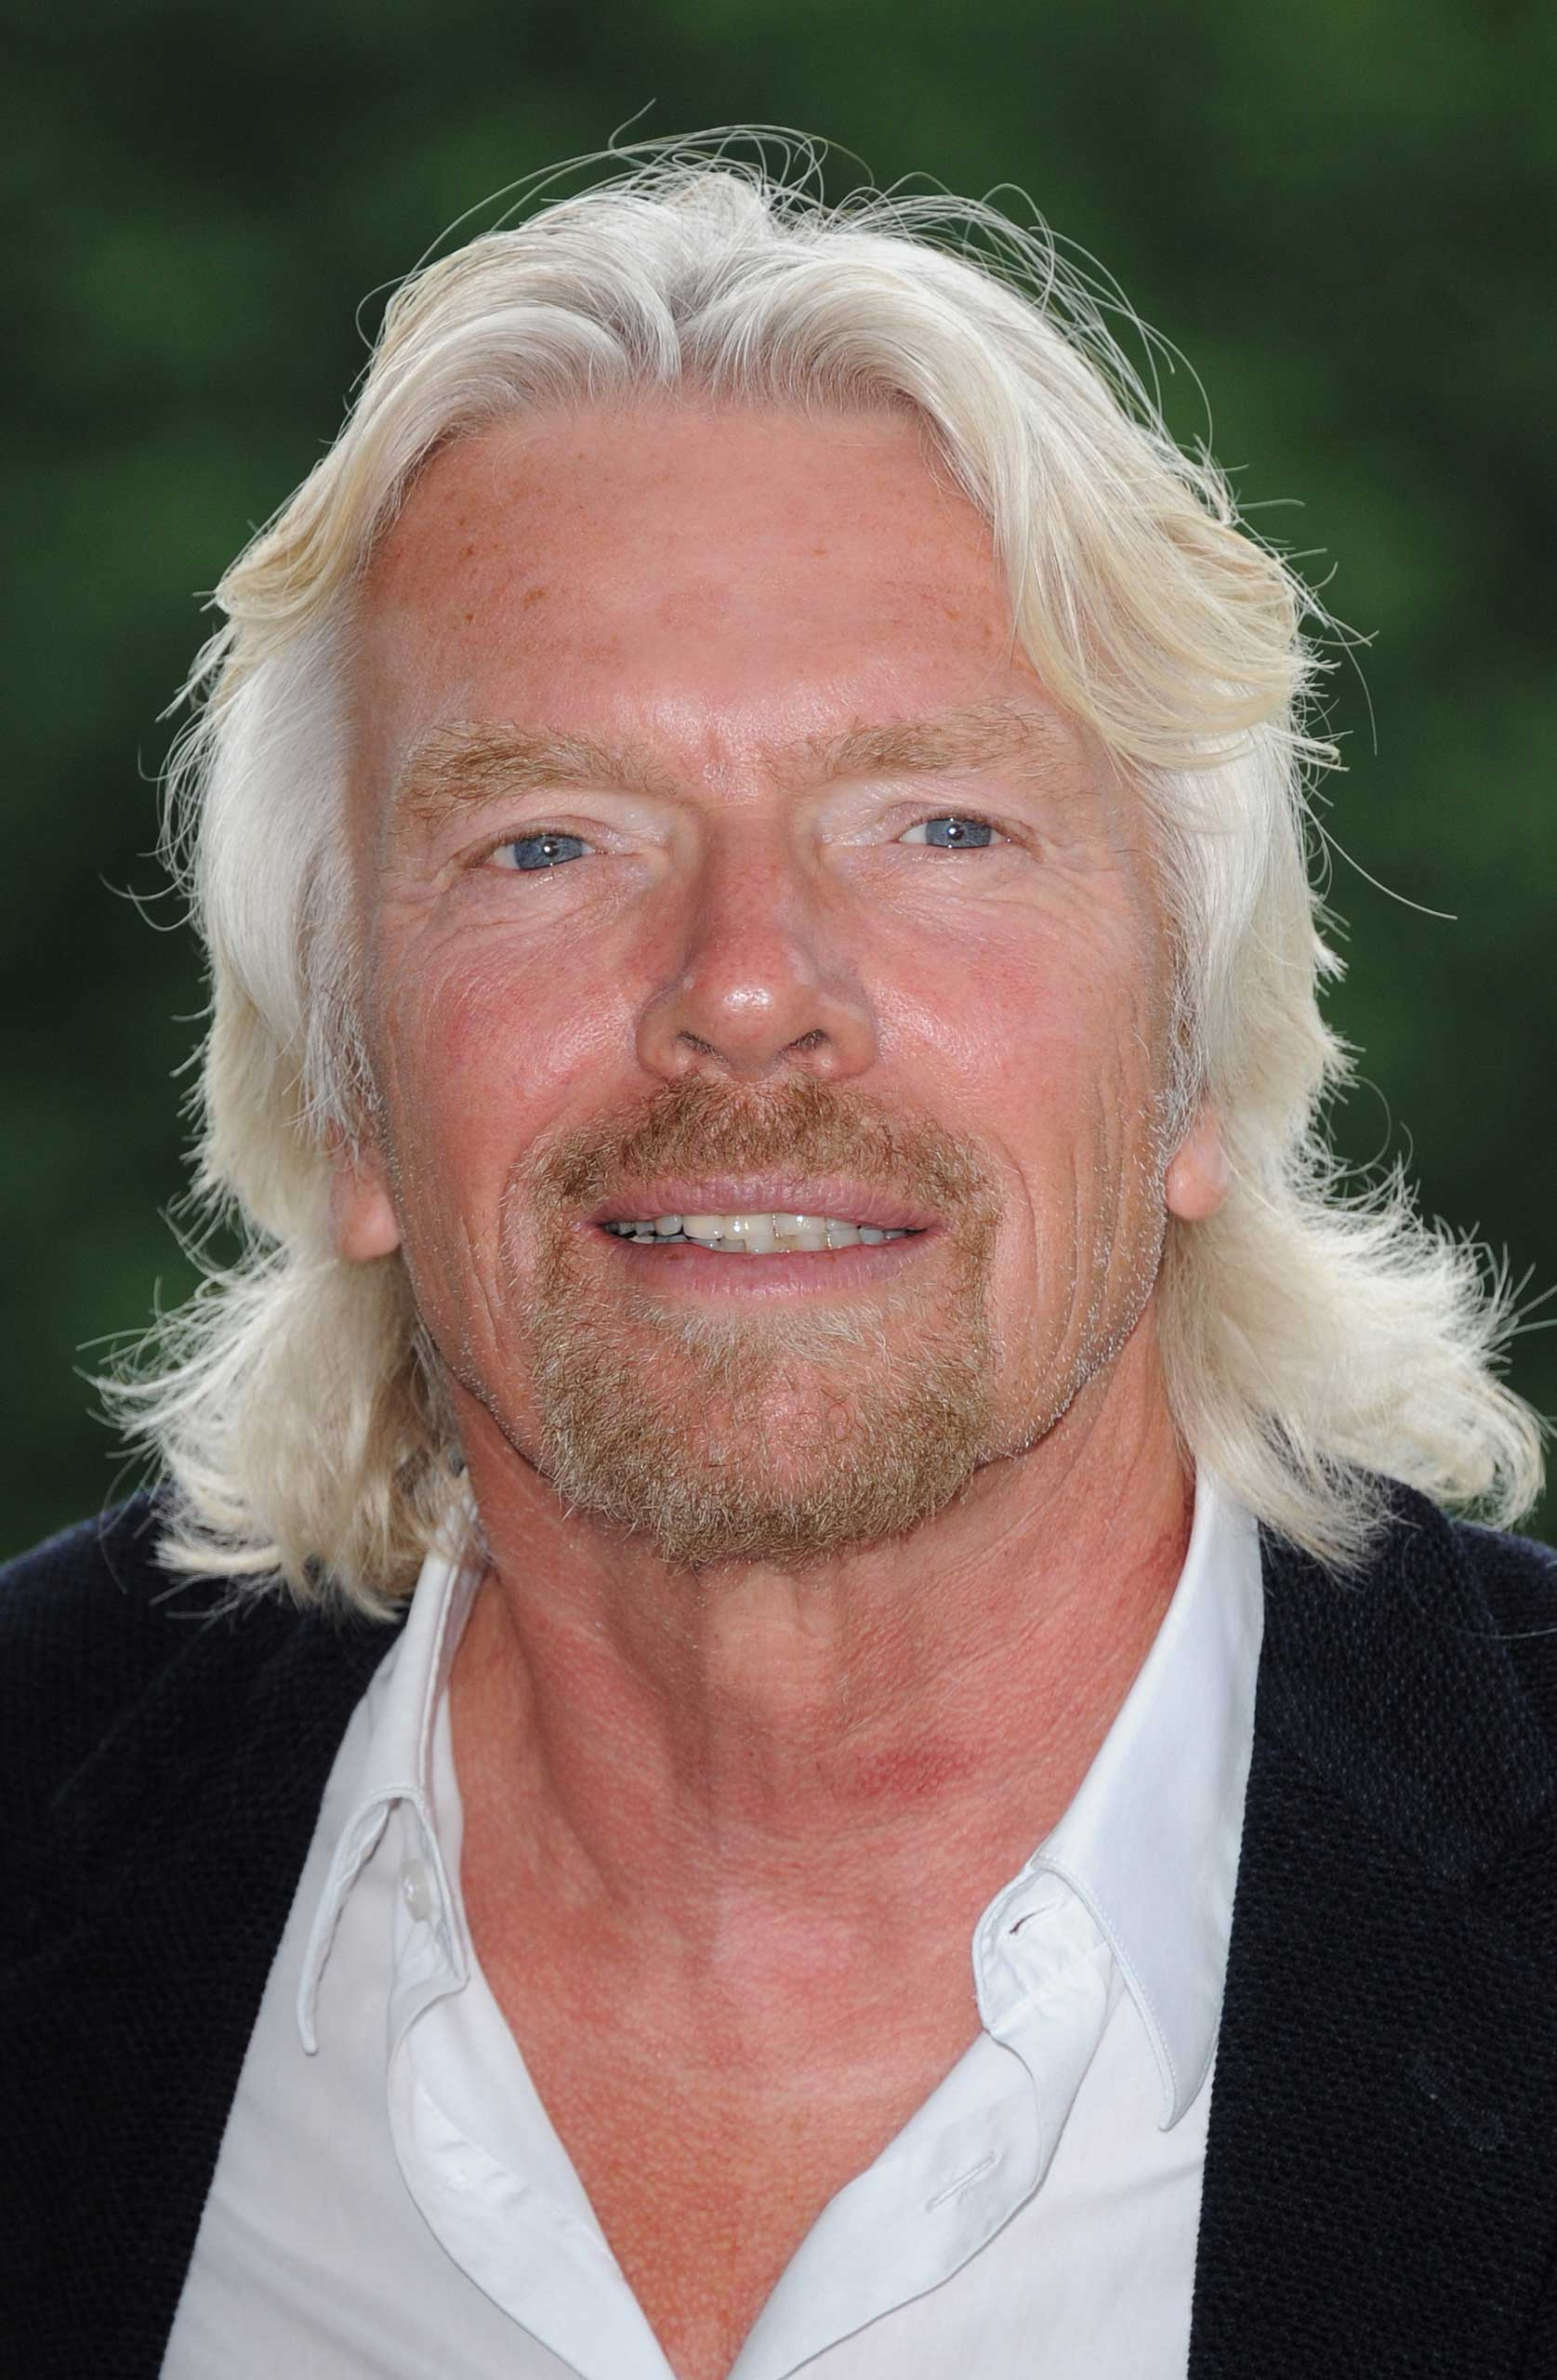 Sir Richard Branson attends a photocall to reveal his celebrity team taking part in this year's Virgin Active London Triathlon at Virgin Active Chiswick Riverside on July 3, 2012 in London.